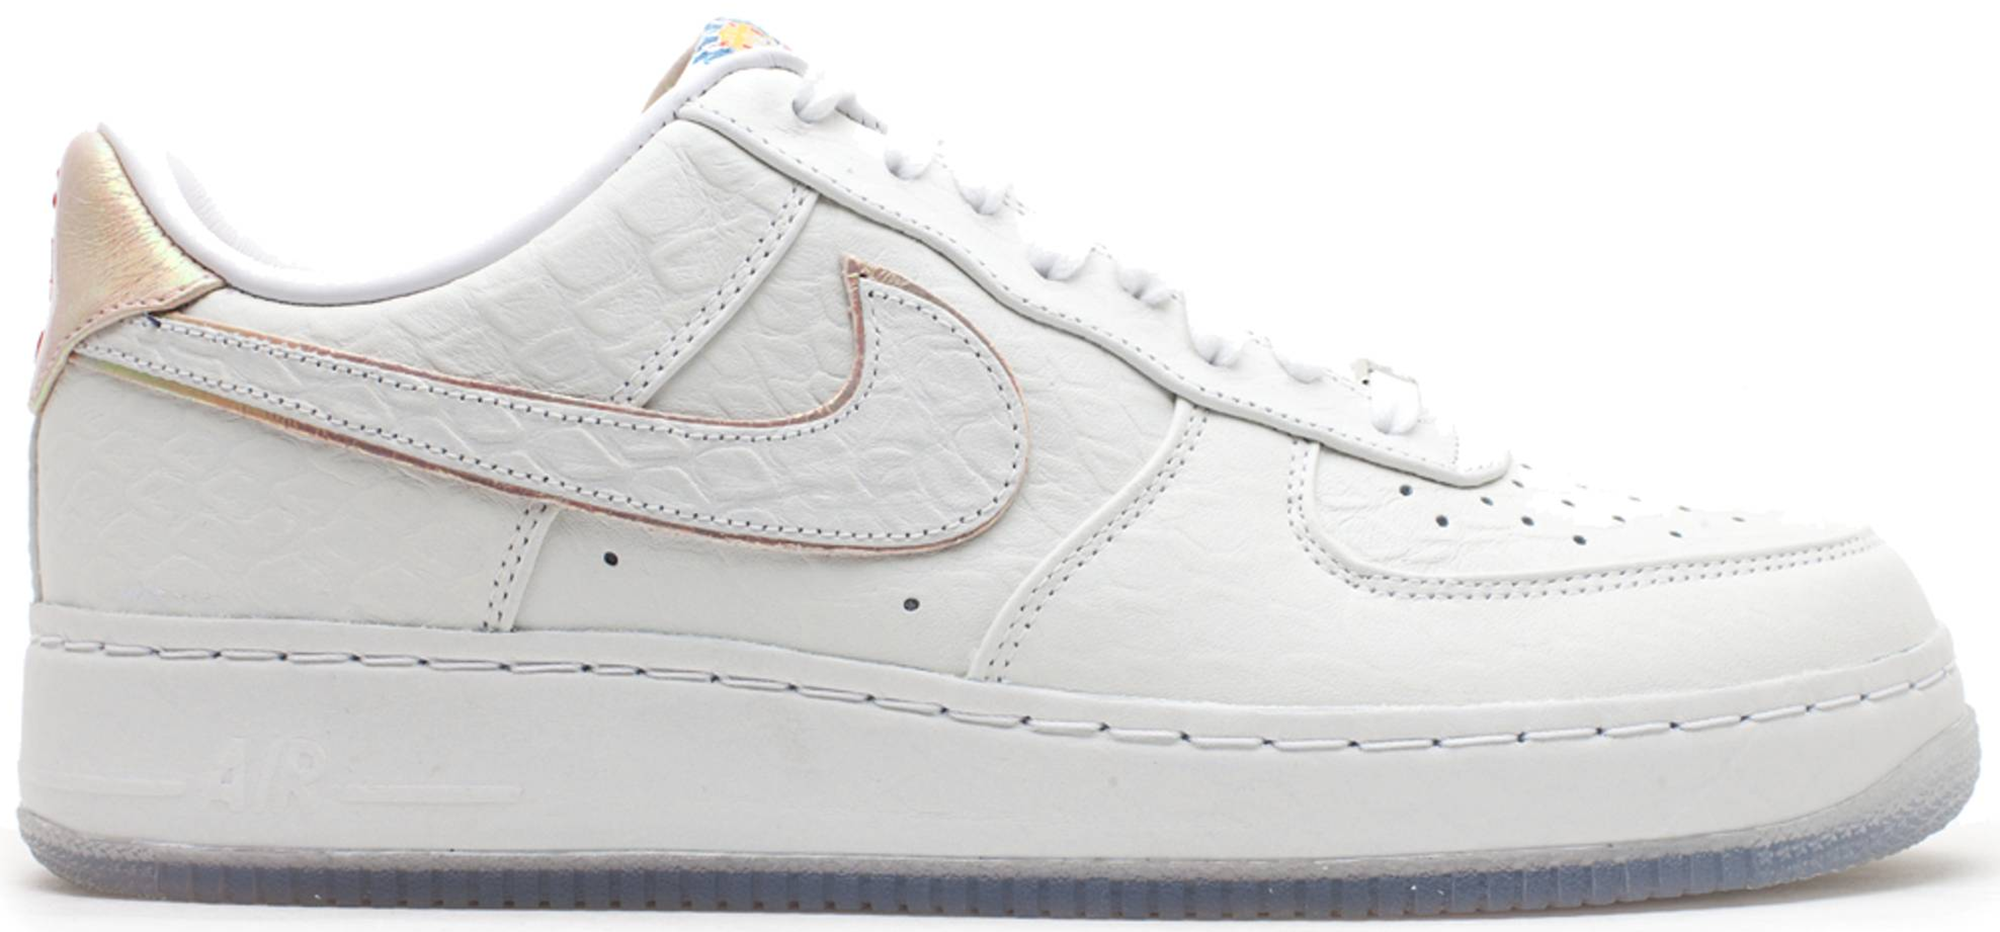 Nike Air Force 1 Low Insideout White